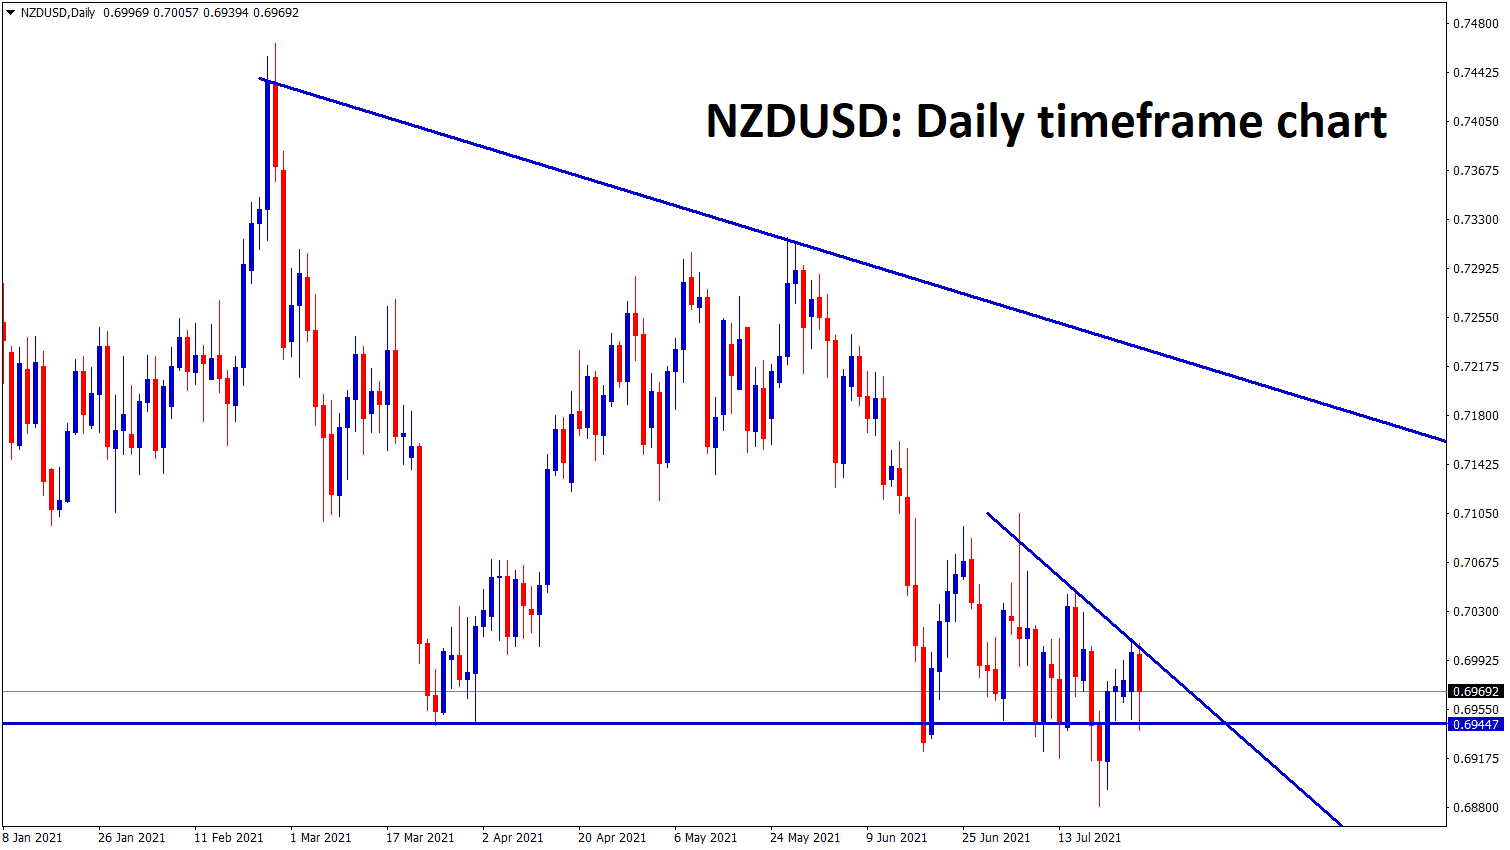 NZDUSD has formed major and minor descending Triangle pattern wait for the breakout from the minor triangle pattern